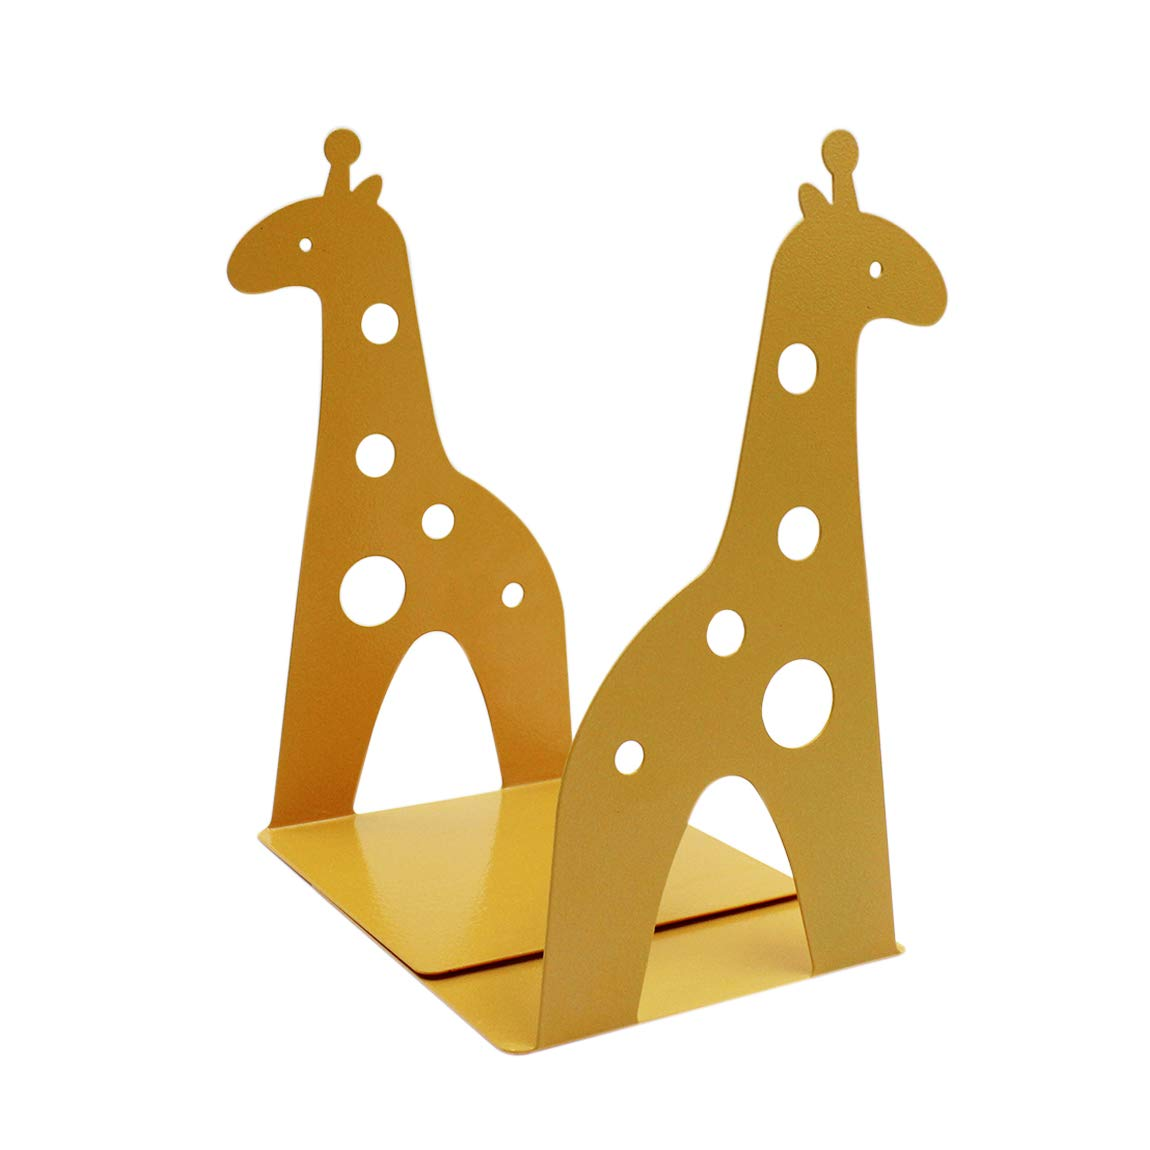 1 Pair Giraffe Heavy Duty Bookend Nonskid Bookend Iron Study Metal Book Ends for Books, DVDs, Magazines, Video Games